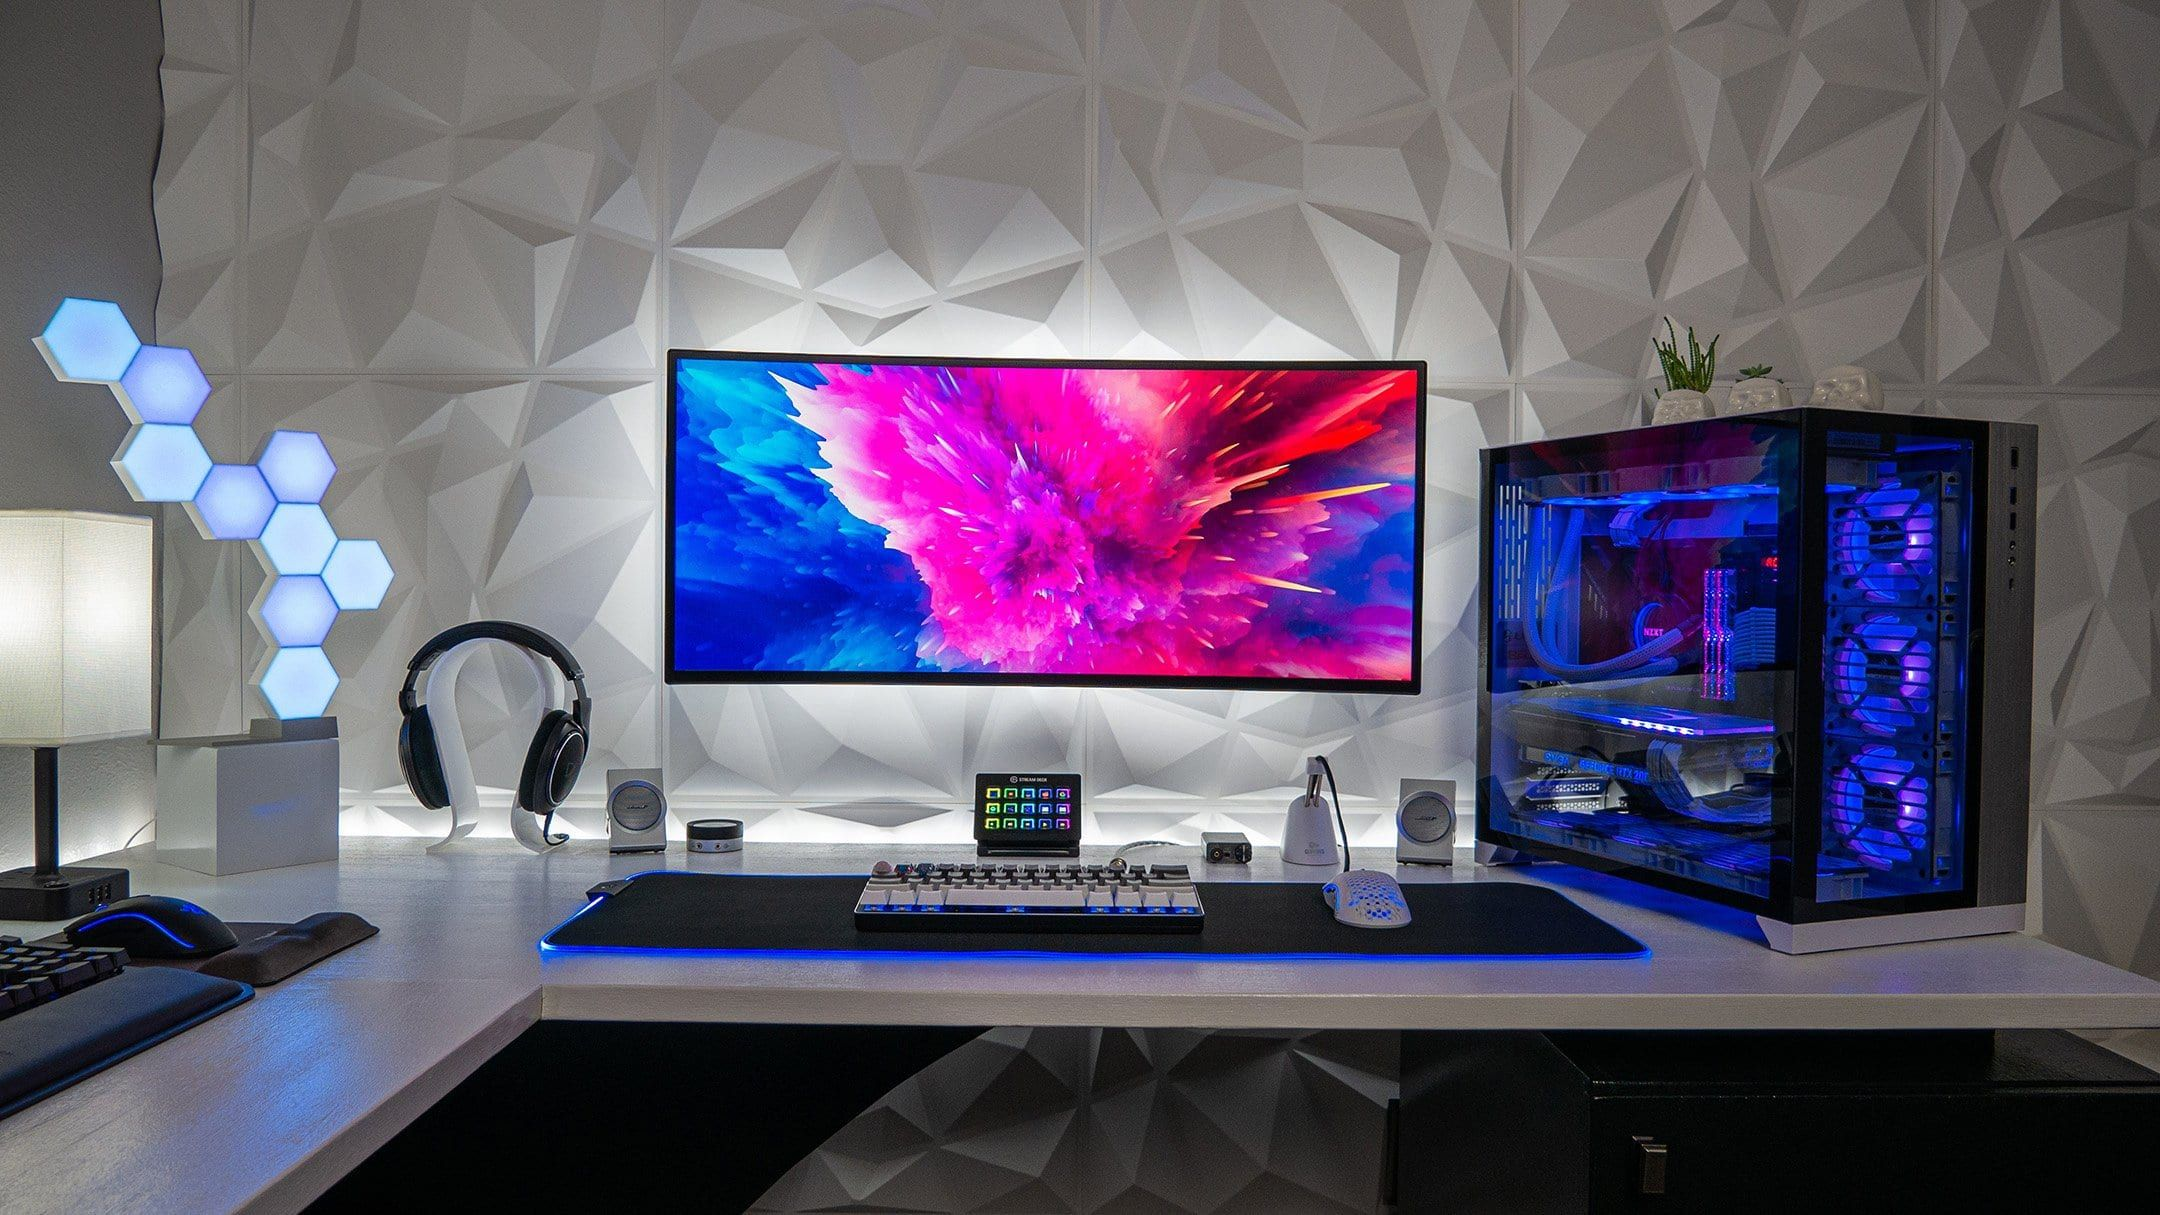 Love The 3d Wall Panel Textures Clean Desk Setup By Pc Battlestations Desk Setup Battlestation Bedroom Setup